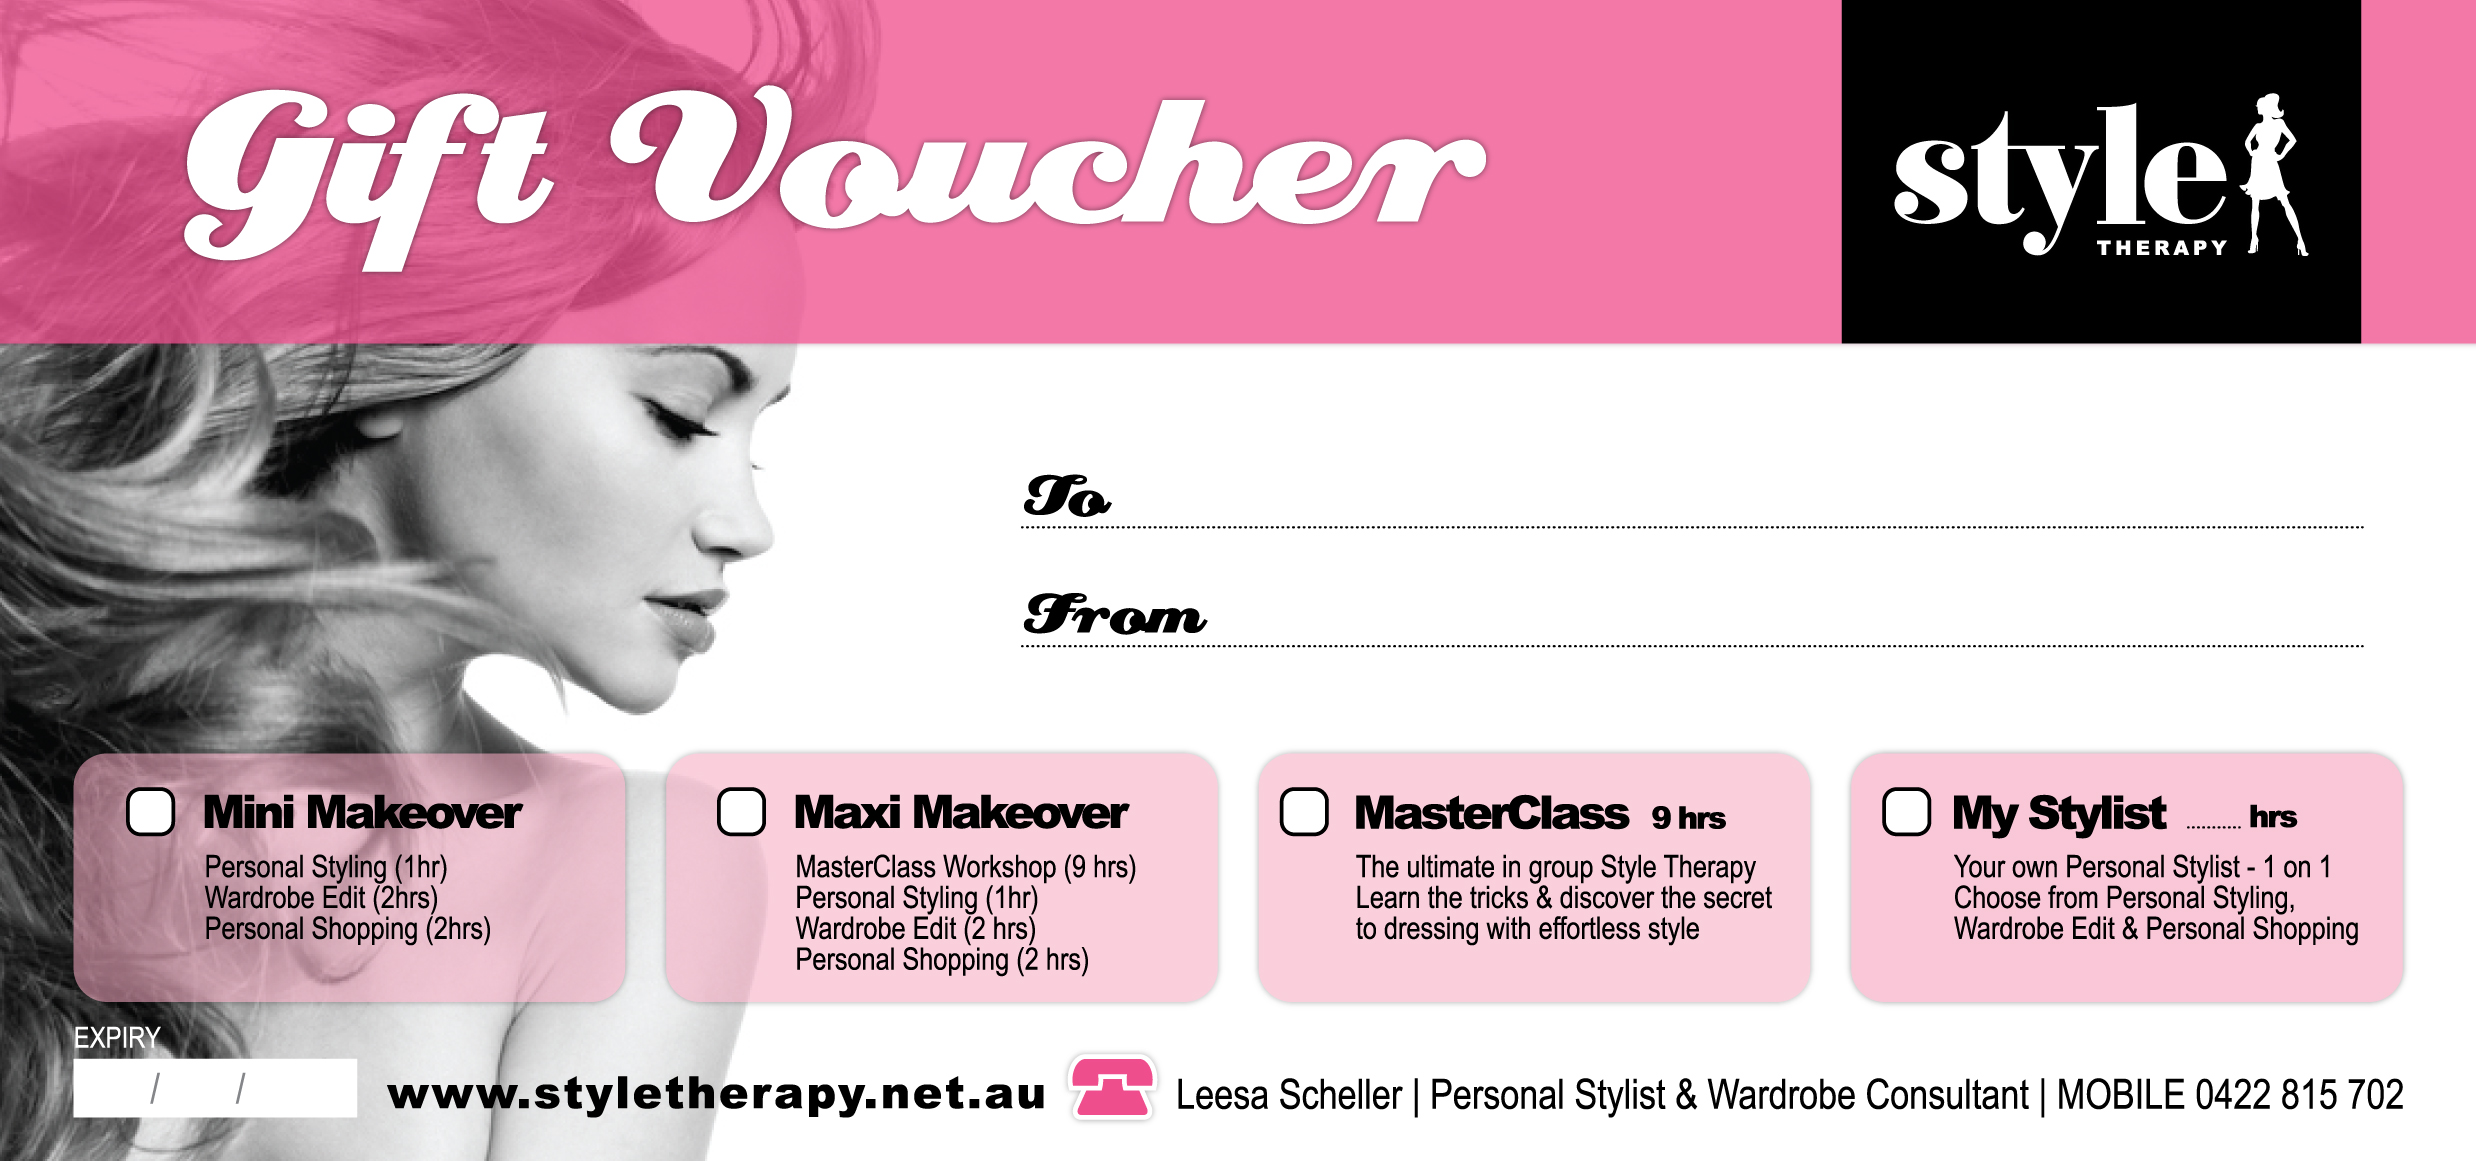 style_therapy_gift_voucher.jpg